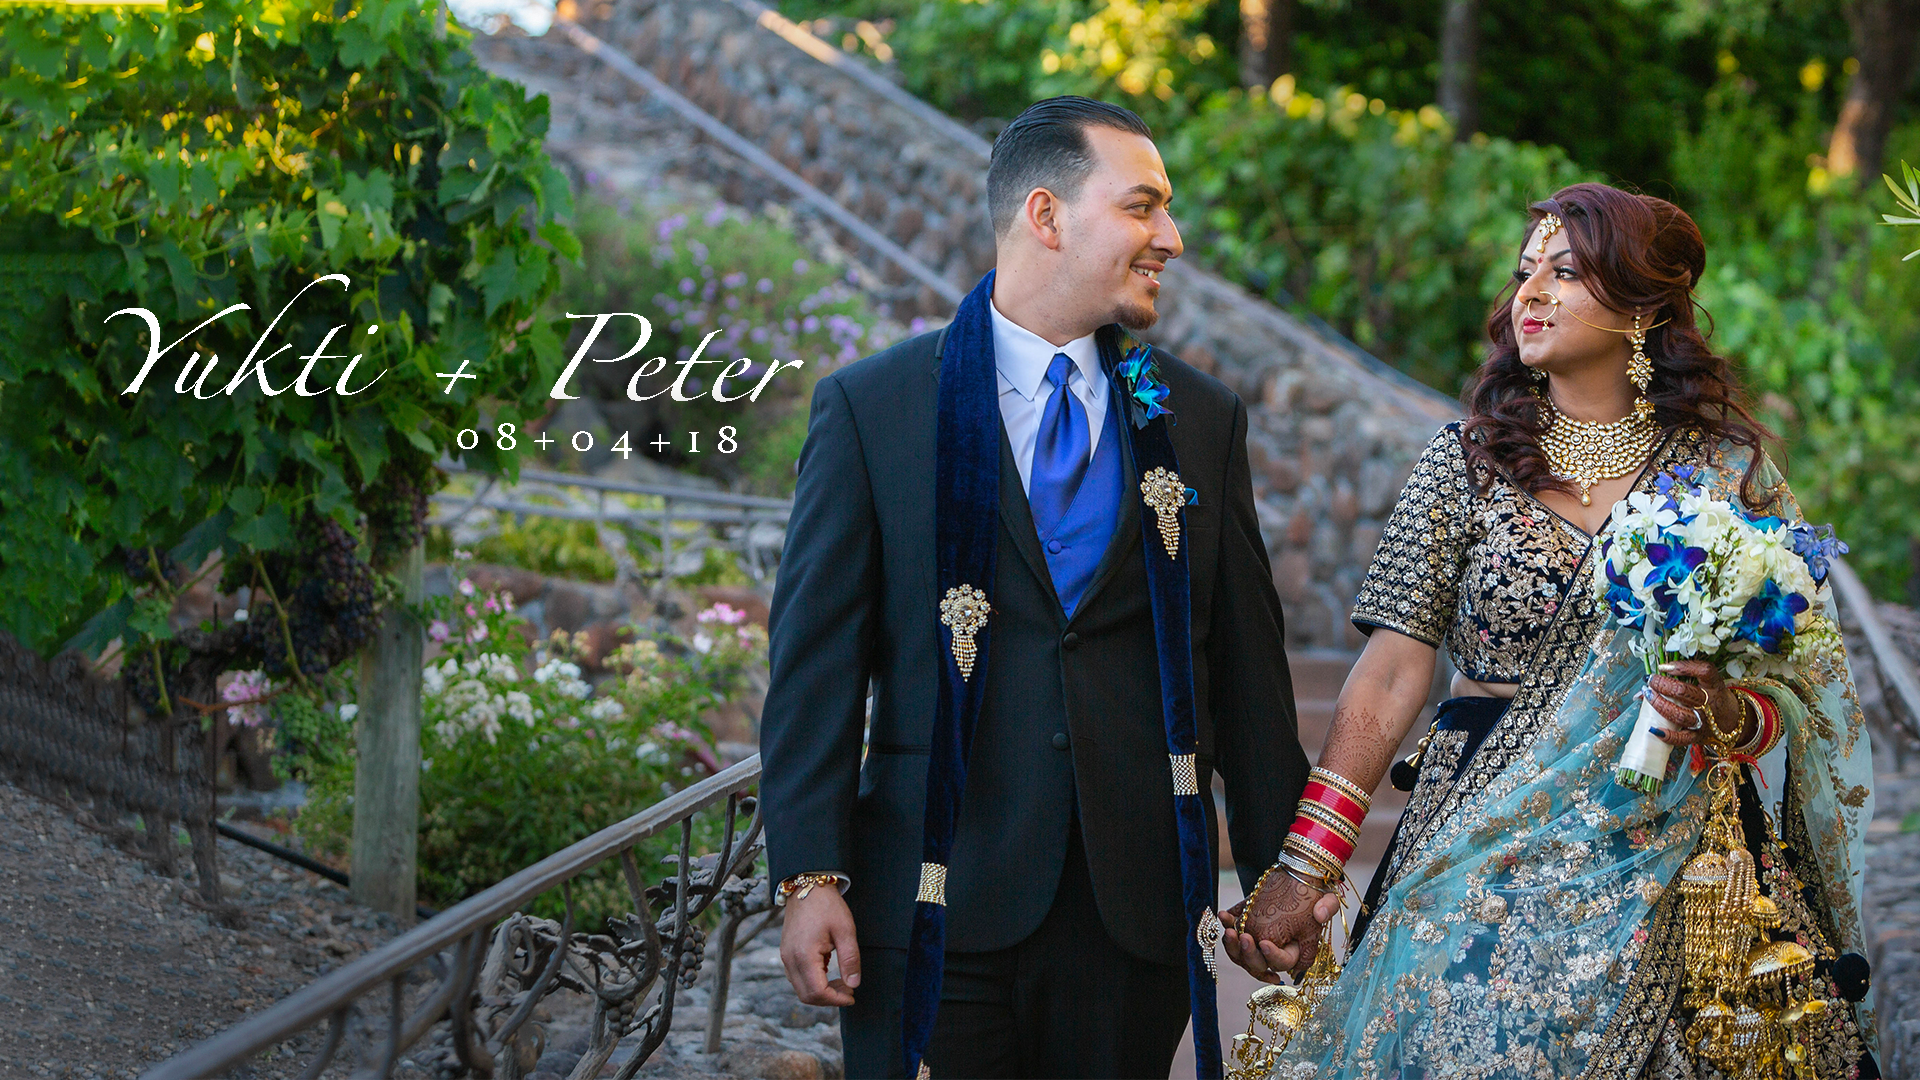 Yukti + Peter | Sonoma, California | viansa Winery